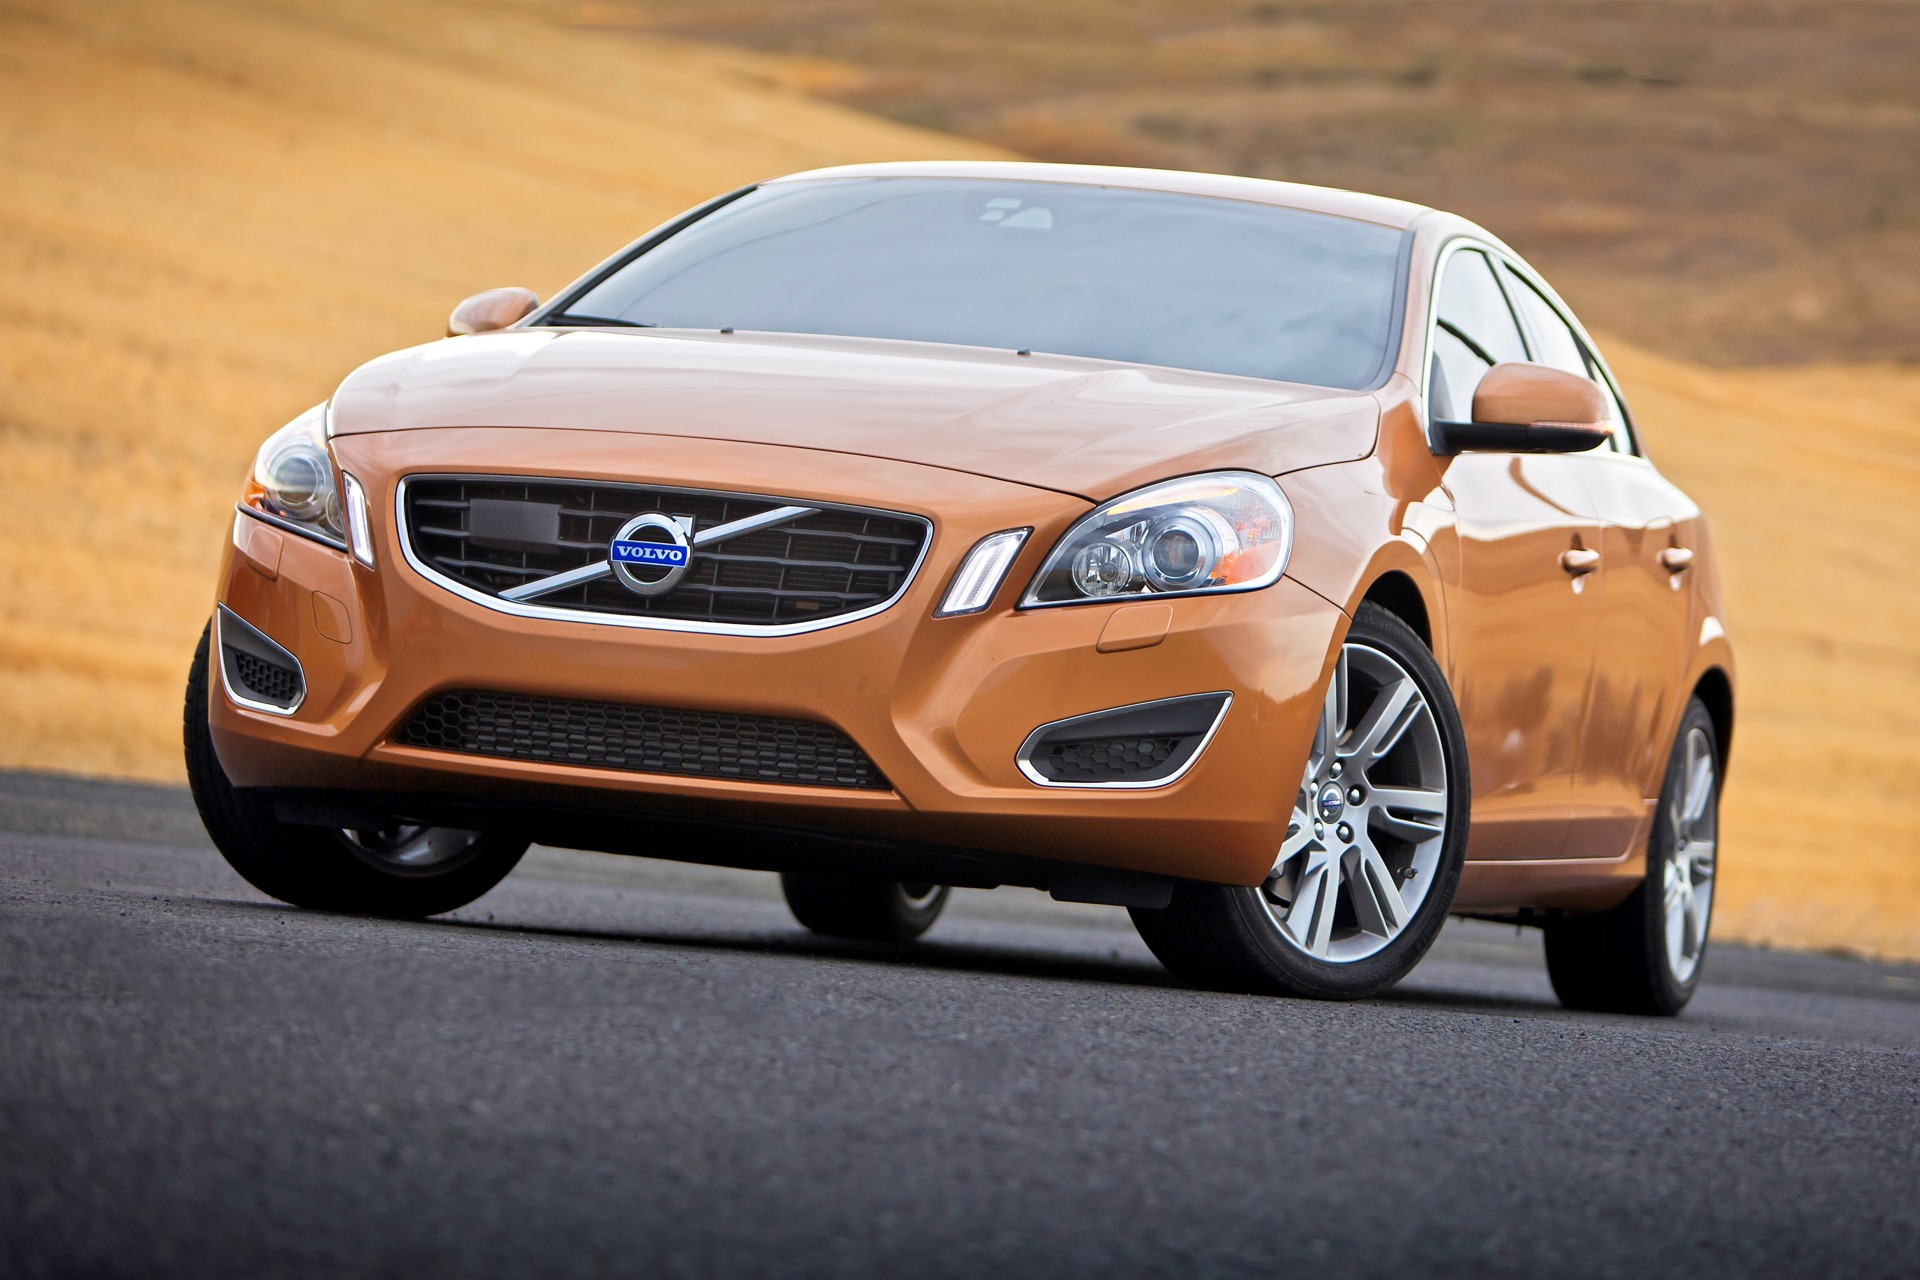 S60 T6 Awd Static Beauty07 -  Volvo